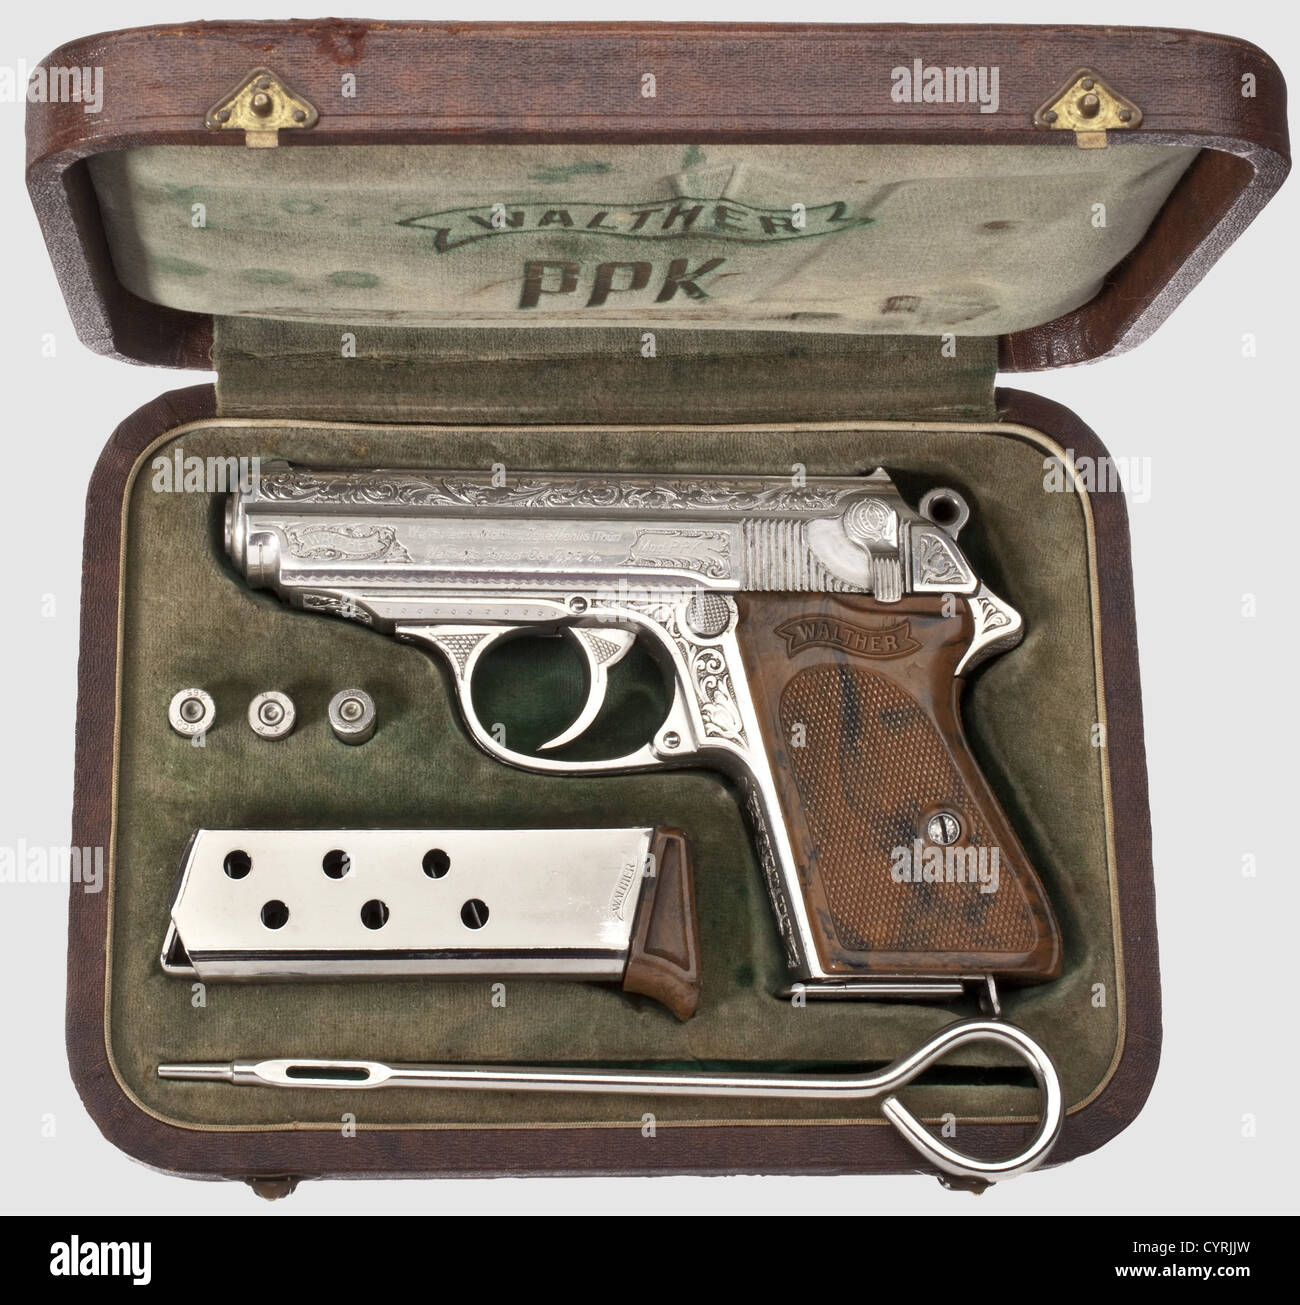 Walther Ppk Zm Engraved Nickel Plated In Its Case